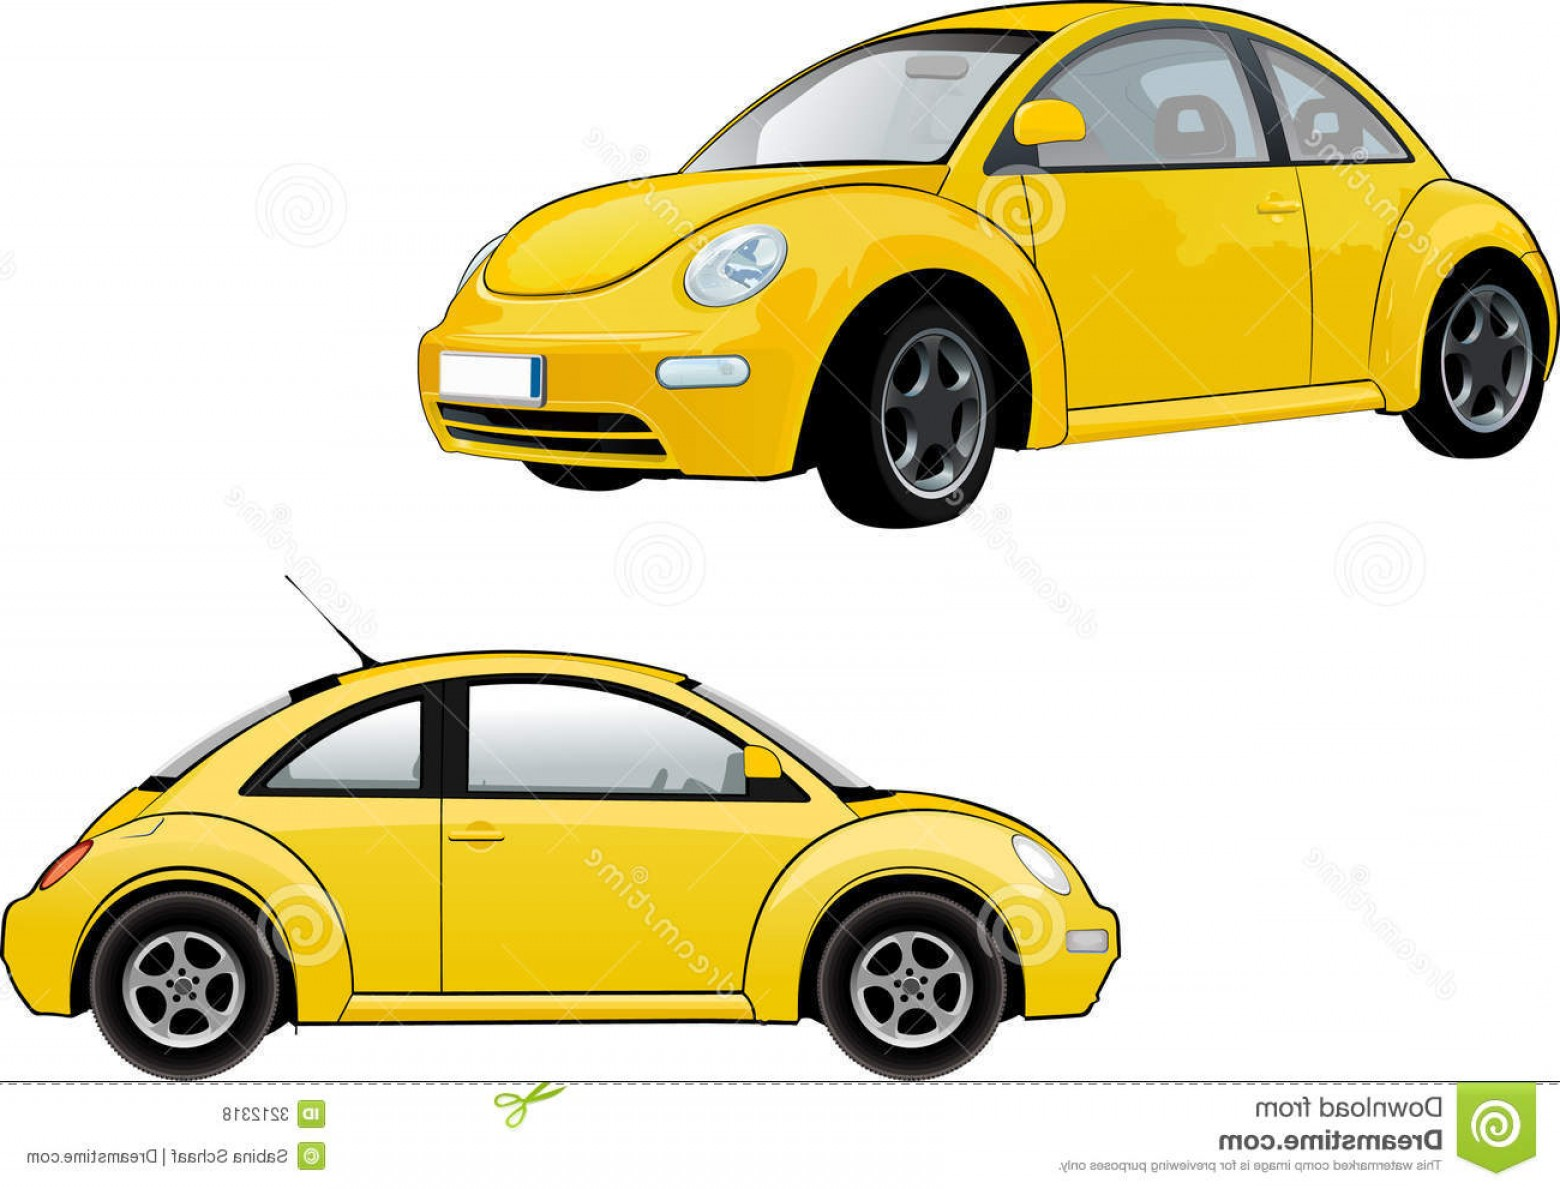 VW Vector Graphic: Royalty Free Stock Photos Volkswagen New Beetle Image